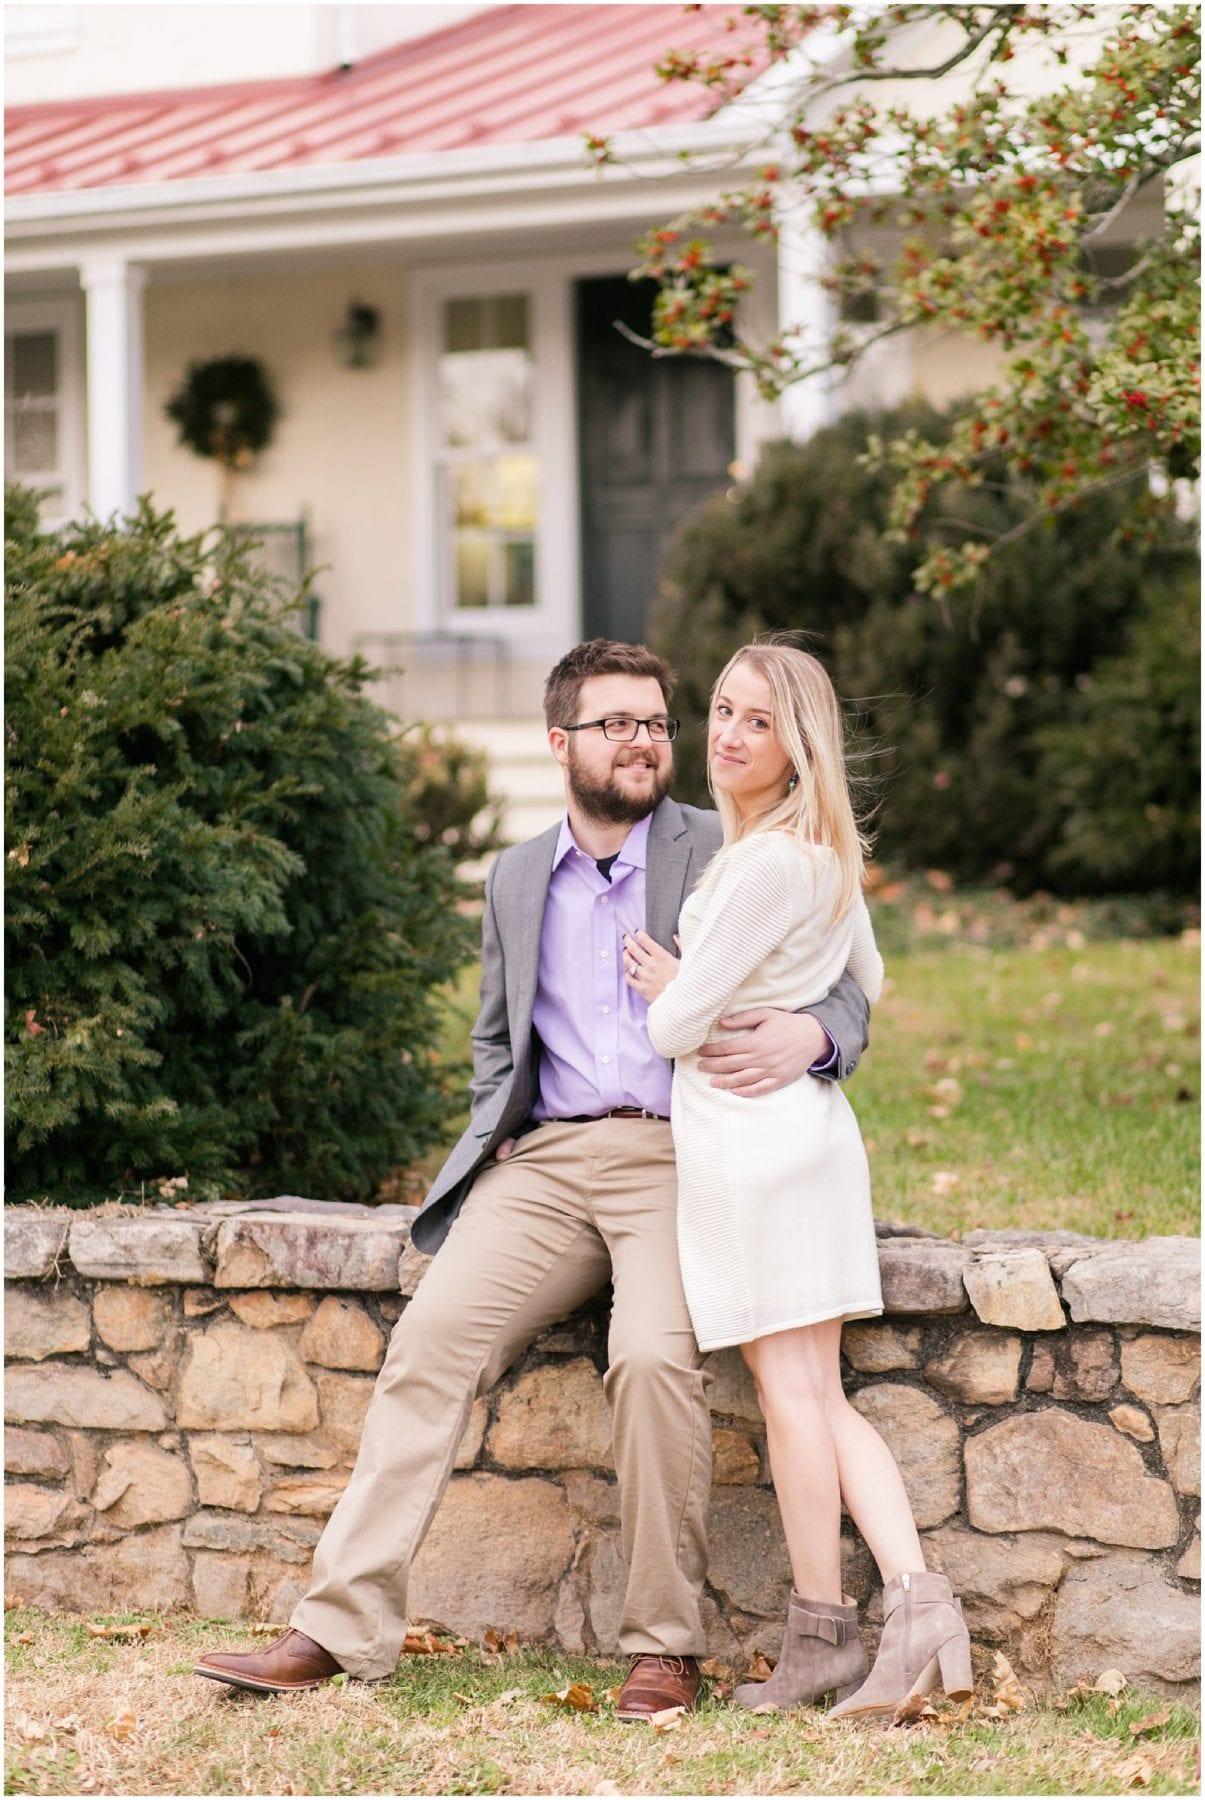 Downtown Middleburg Engagement Photos Virginia Wedding Photographer Megan Kelsey Photography Blair & Mike-191.jpg